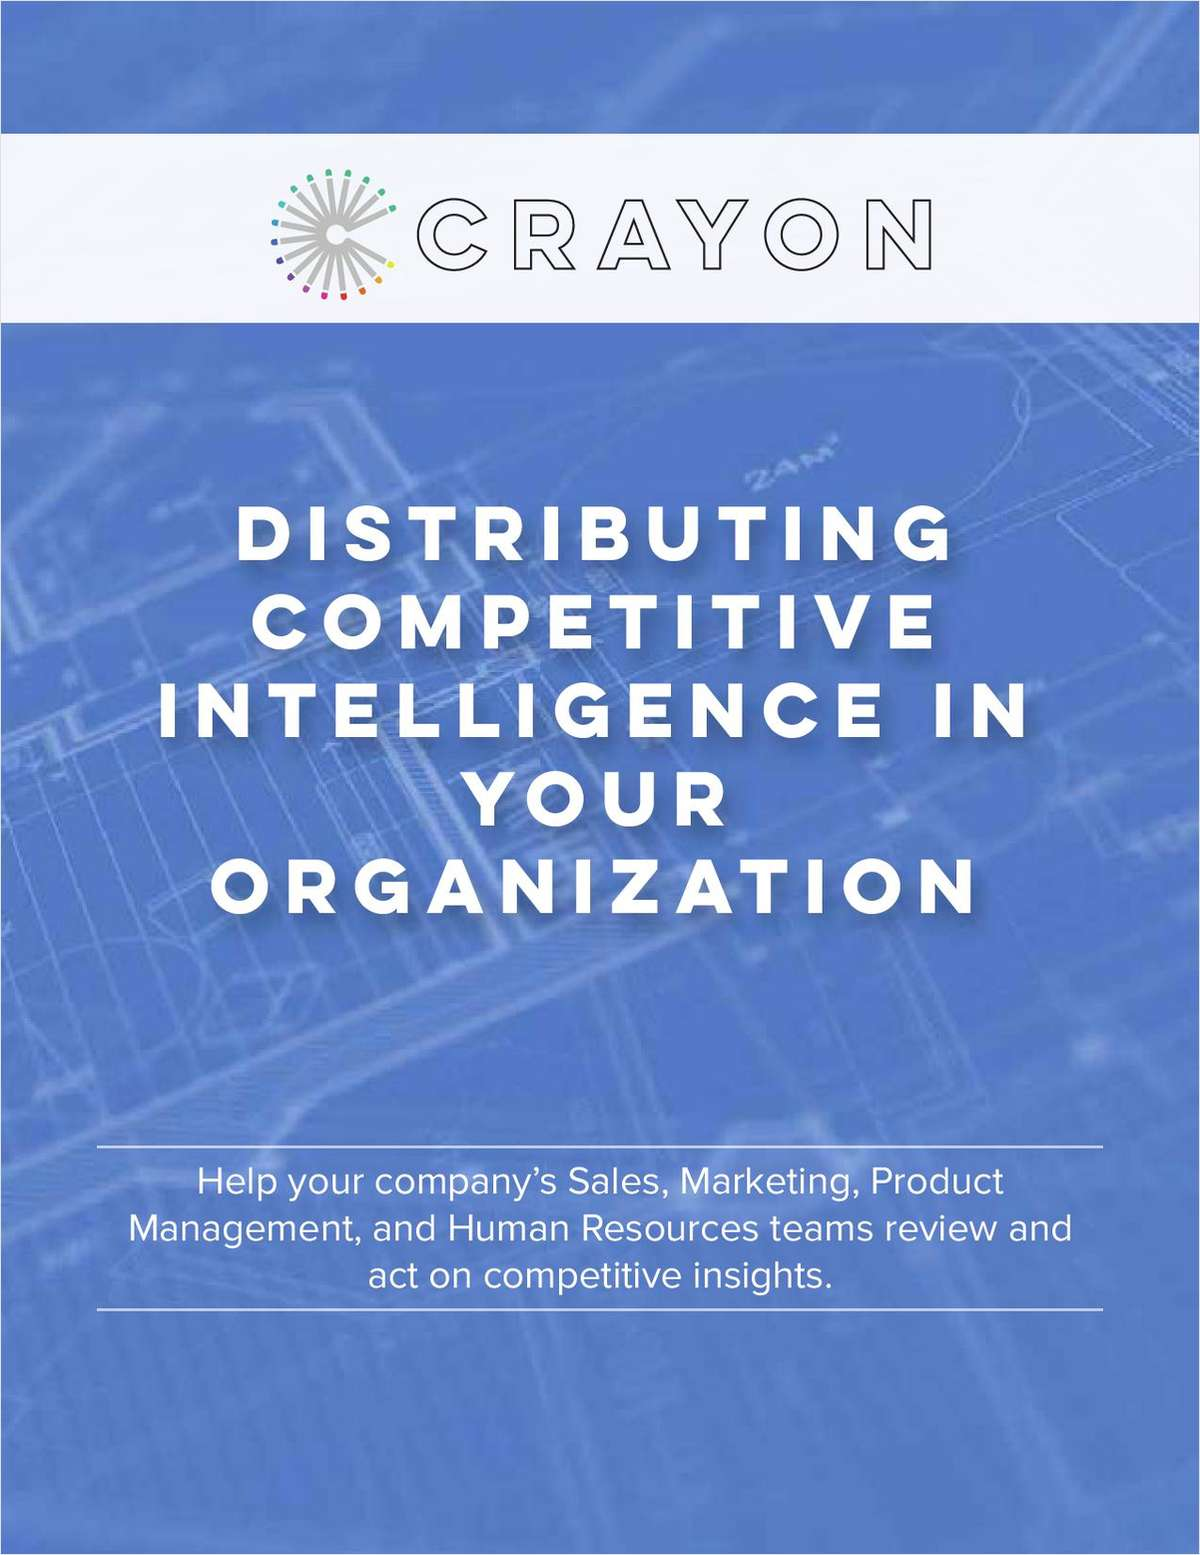 DISTRIBUTING COMPETITIVE INTELLIGENCE IN YOUR ORGANIZATION